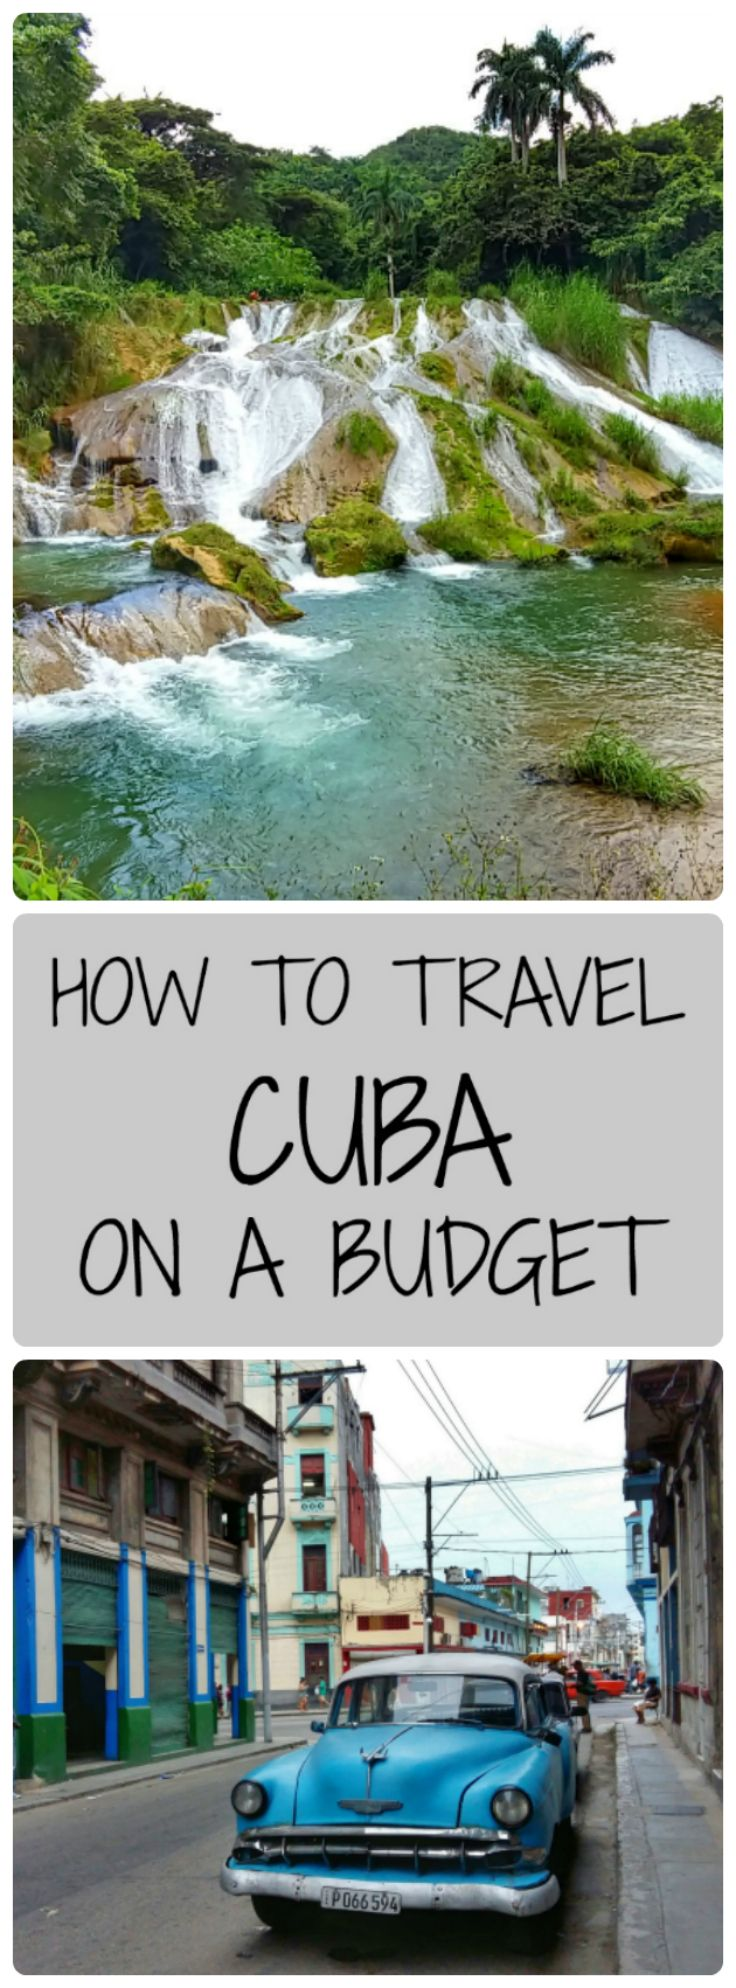 Travelling to Cuba on a Budget?  Here are all the tips you need about going to Cuba and not breaking the bank!  Includes tips for solo travel to Cuba and backpacking in Cuba!